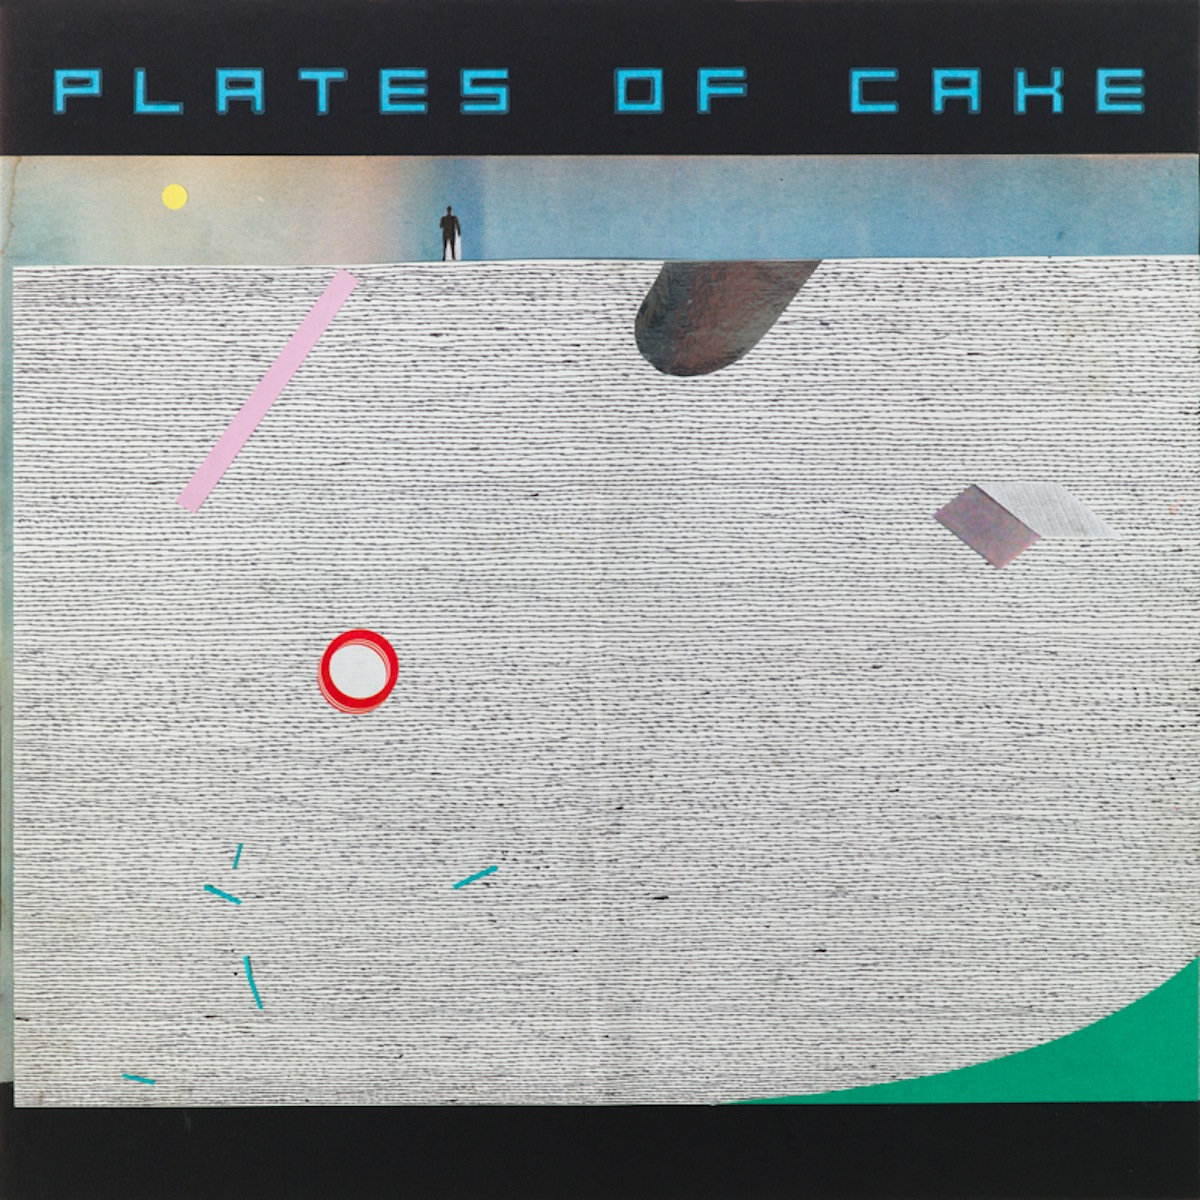 All Three Plates Of Cake Full Lengths For S30 Includes Unlimited Streaming Becoming Double Via The Free Bandcamp App Plus High Quality In